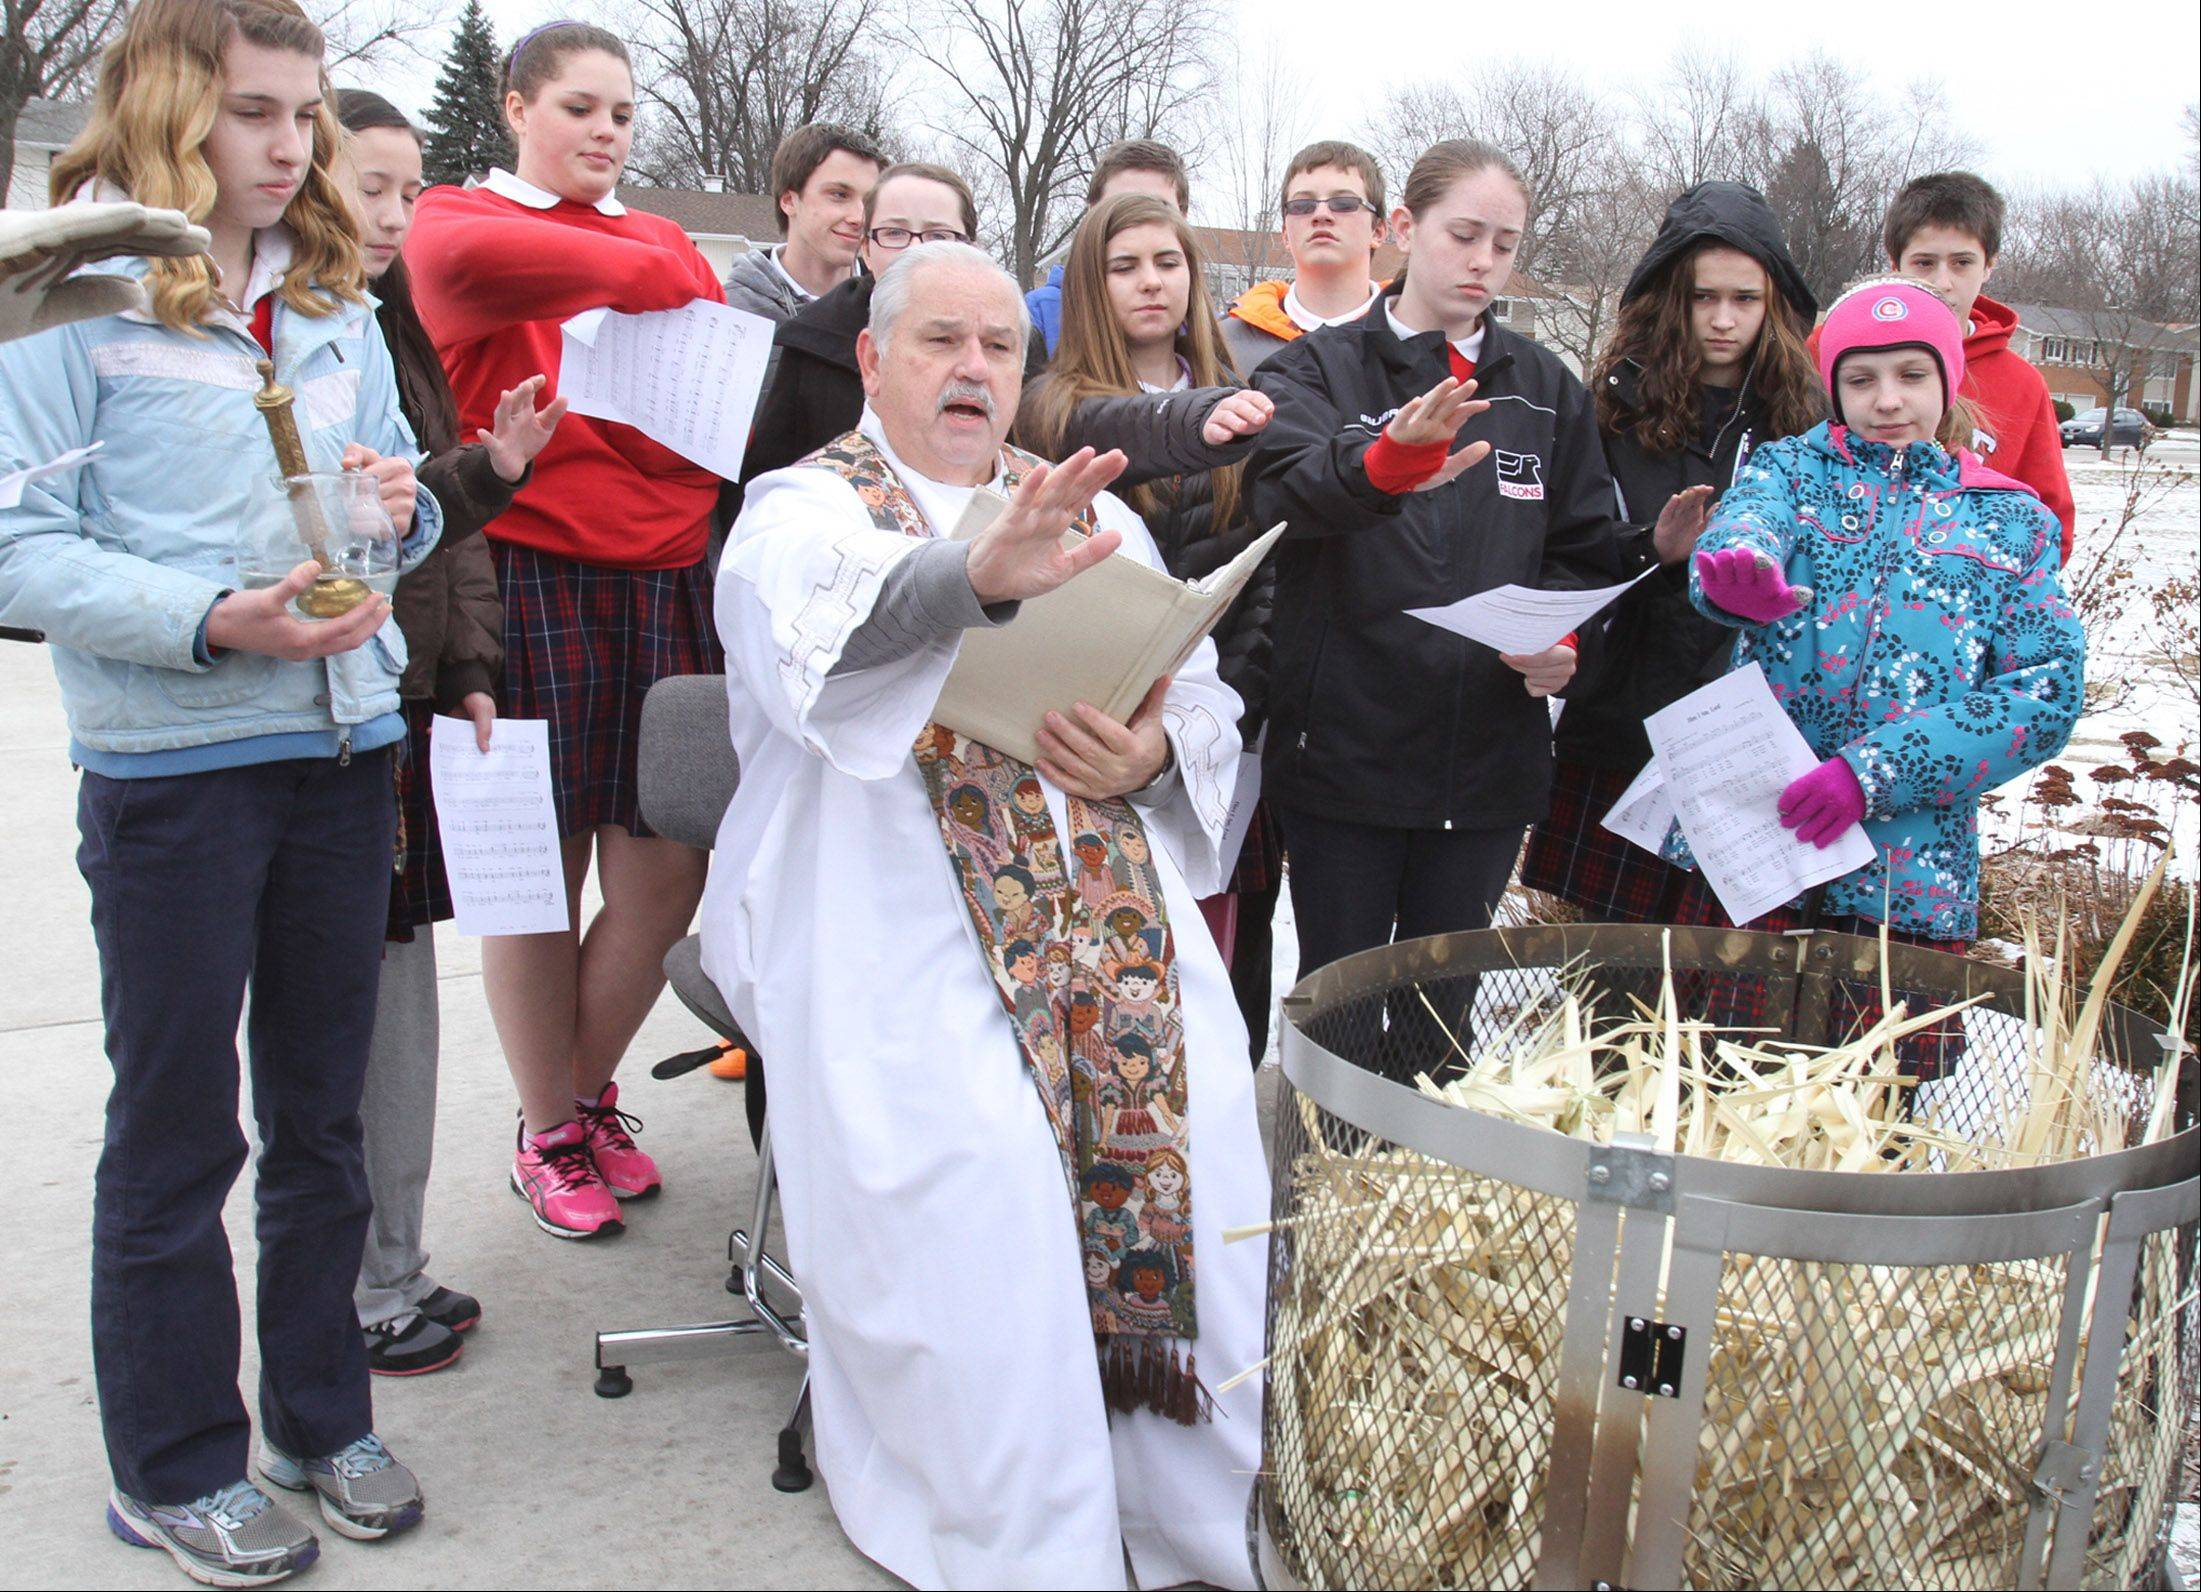 Students at St. Thomas of Villanova School in Palatine look on as the Rev. Tom Rzepiela oversees palm burning Tuesday afternoon. The ashes will be used for Ash Wednesday.